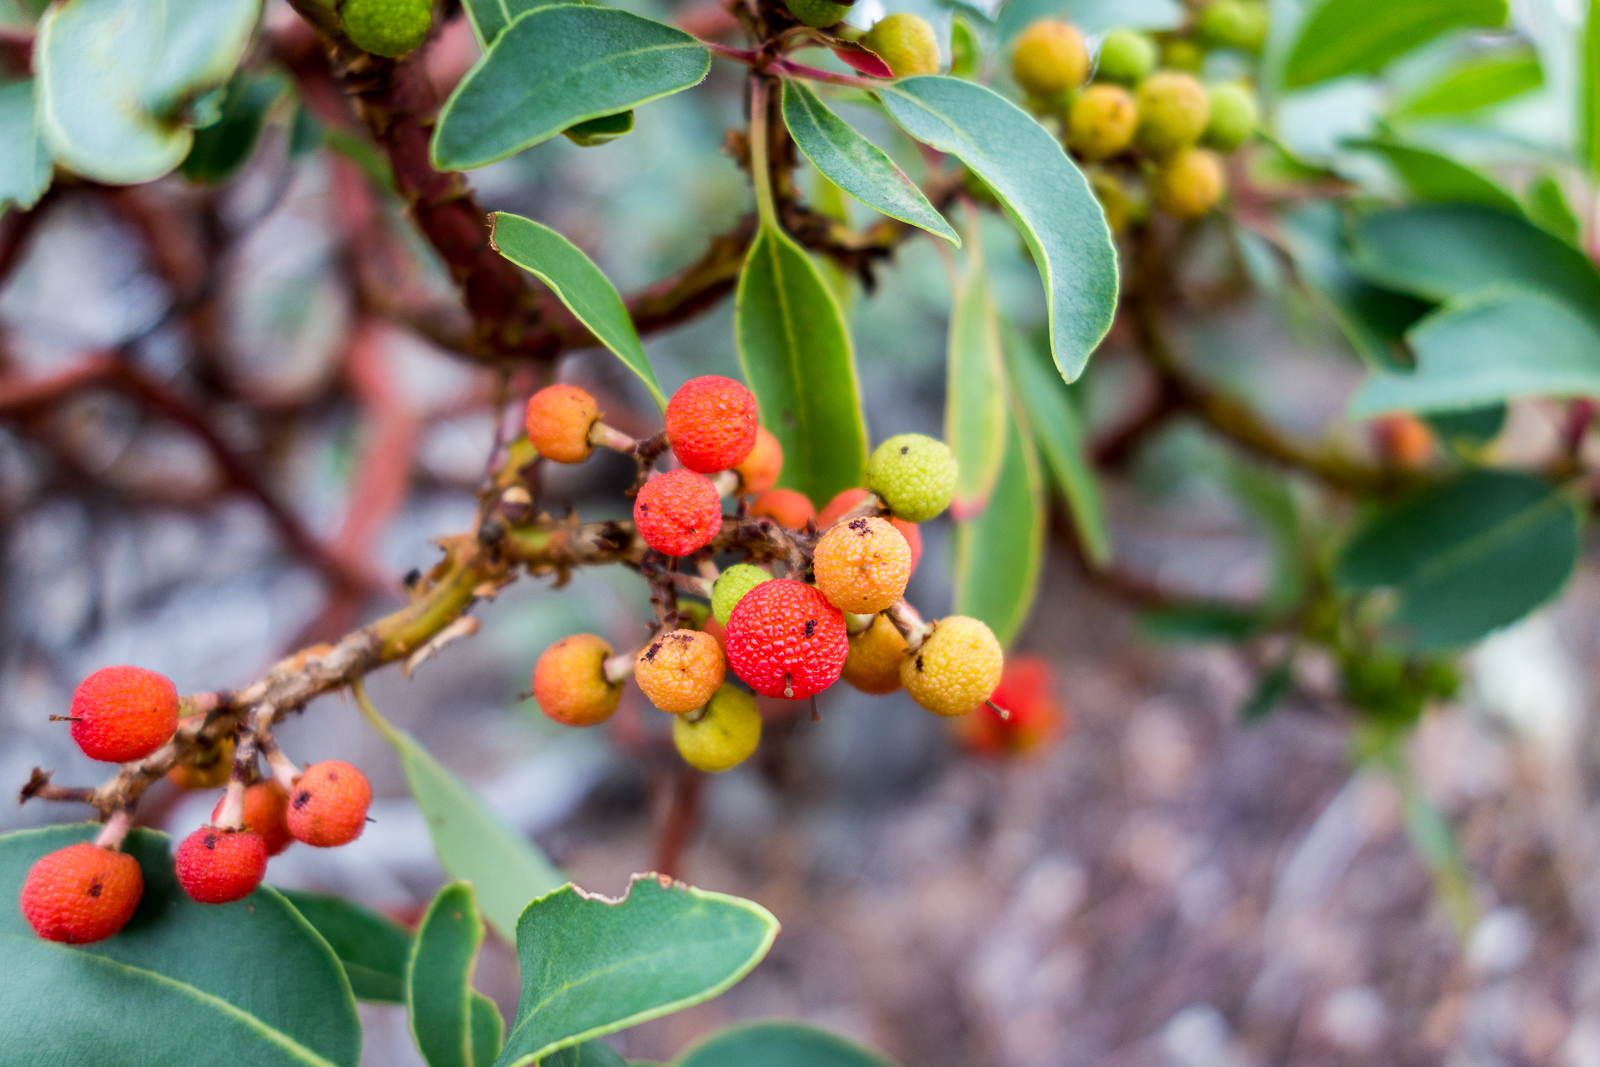 Colorful Madrone berries along the Red Ridge Trail. October 2015.